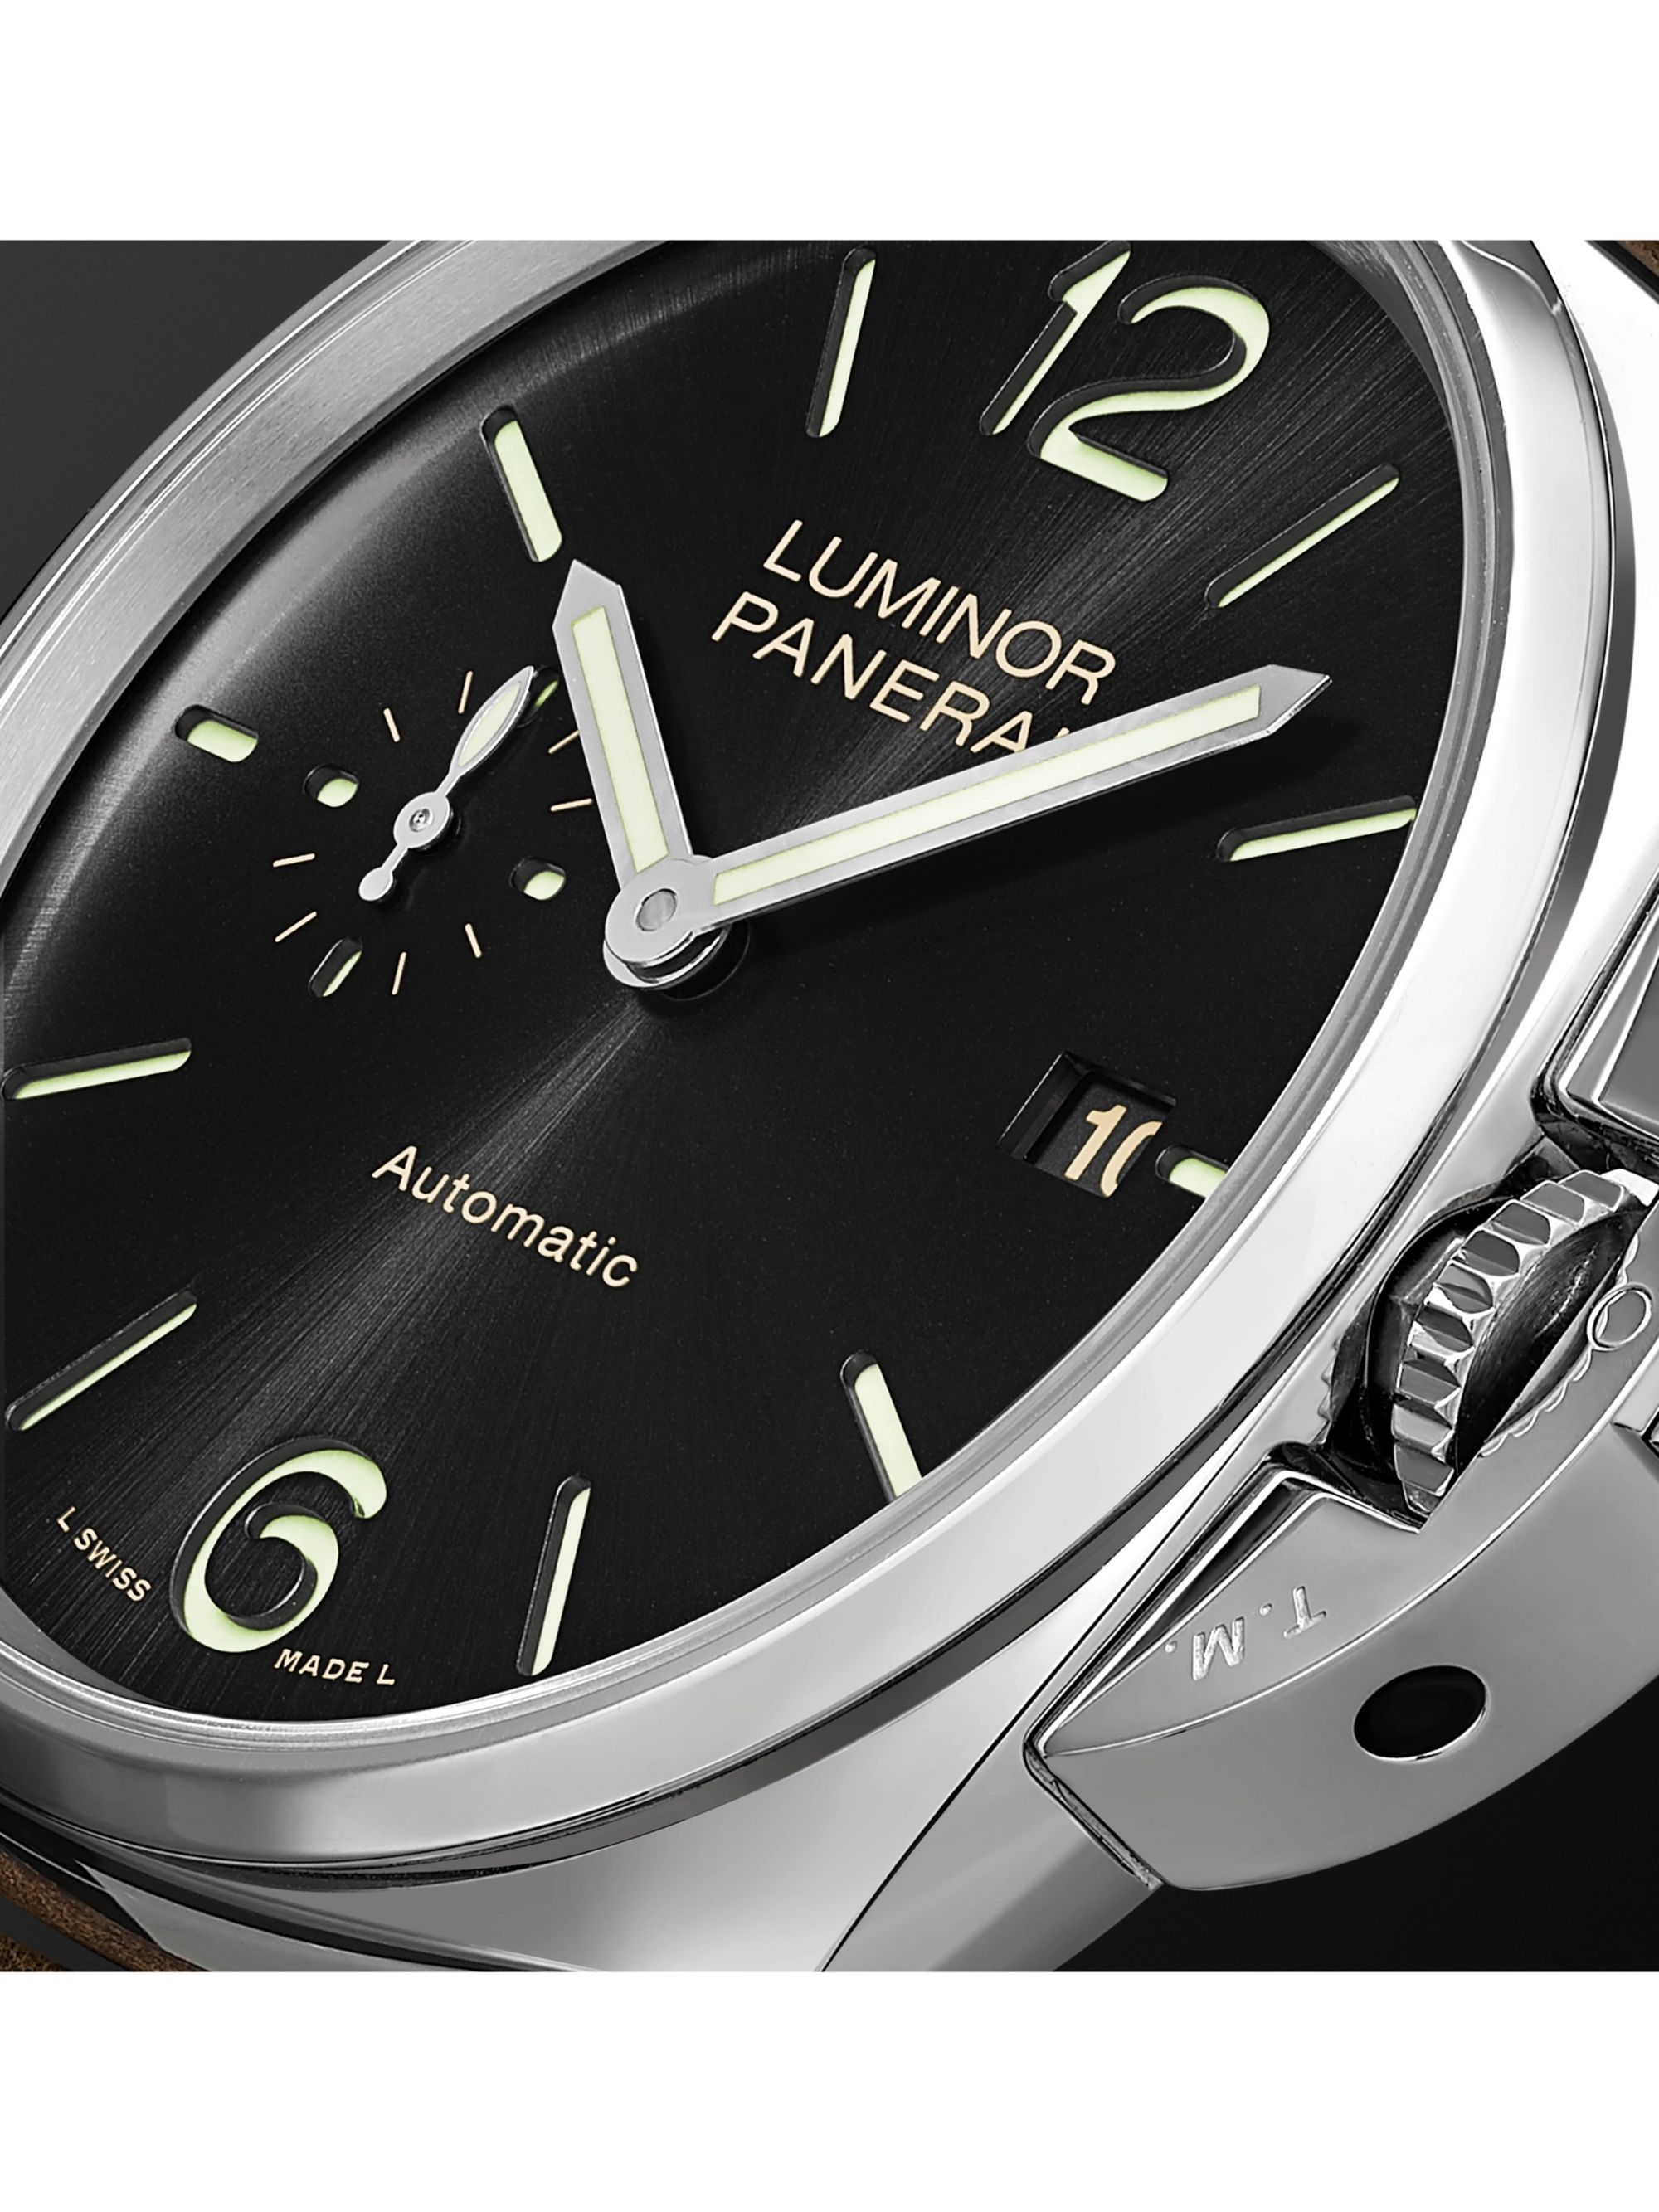 Panerai Luminor Due Automatic 42mm Stainless Steel and Leather Watch, Ref. No. PAM00906